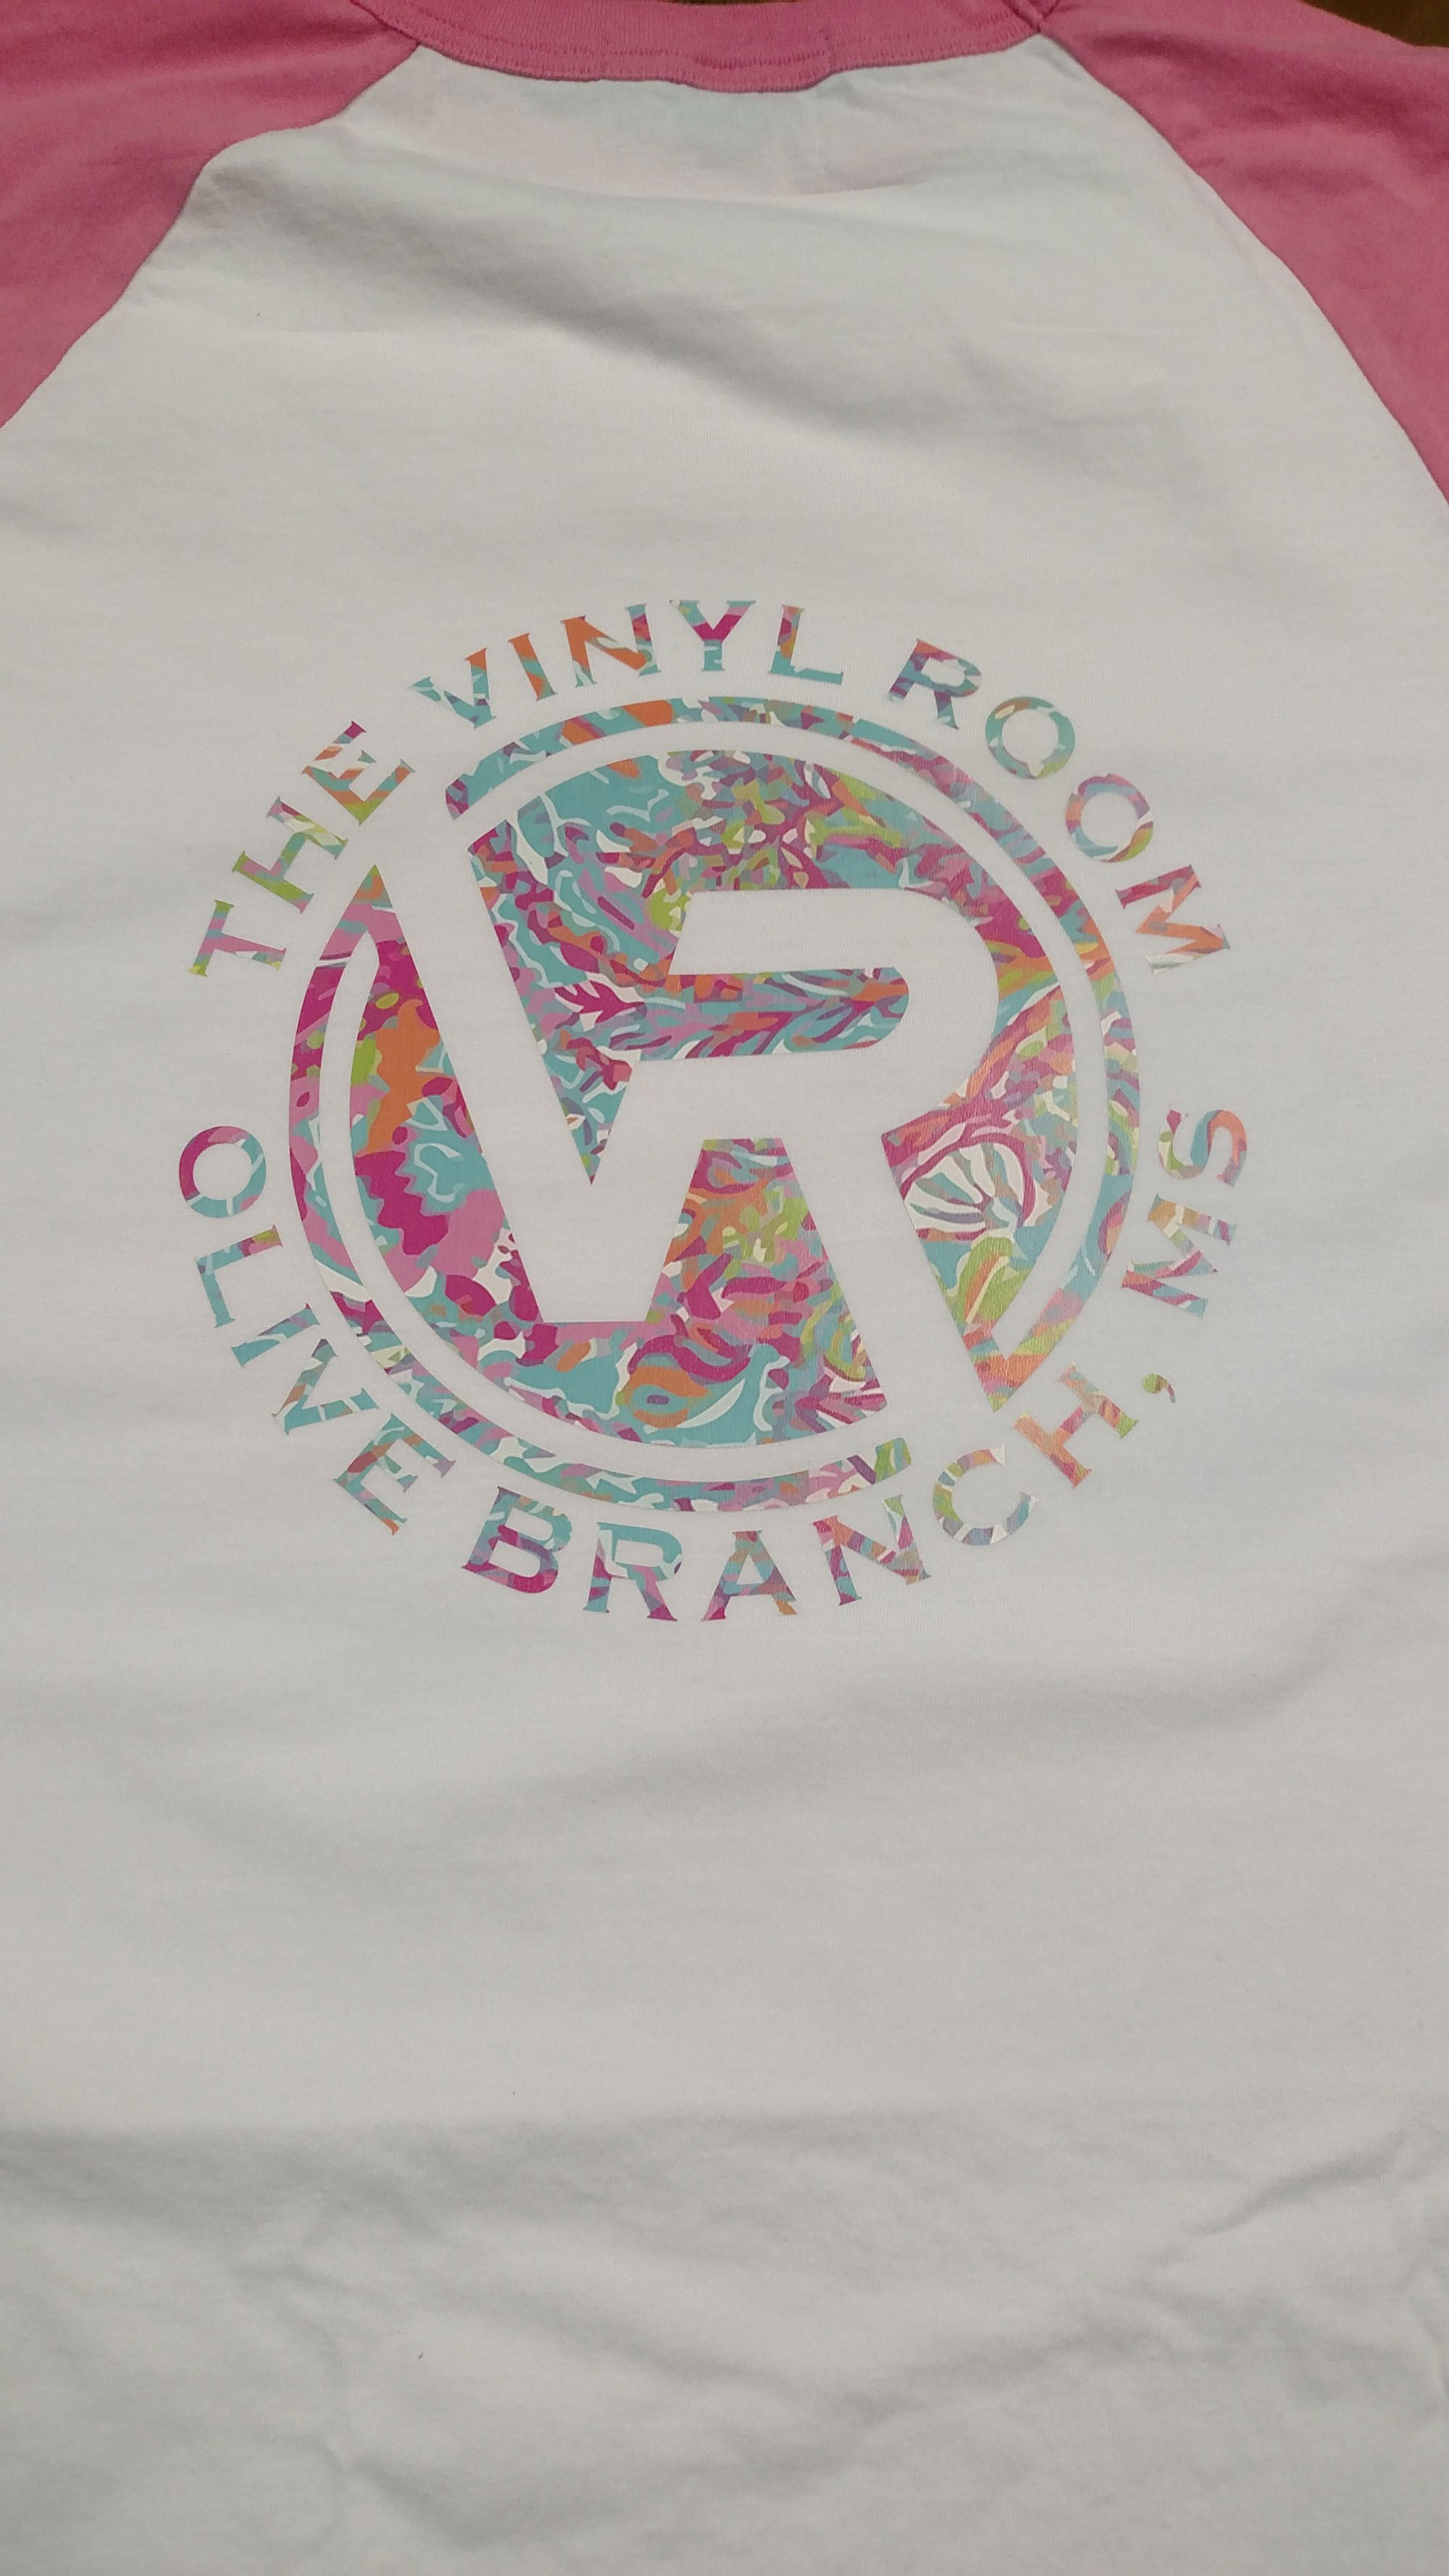 Vinyl Room Logo Shirt